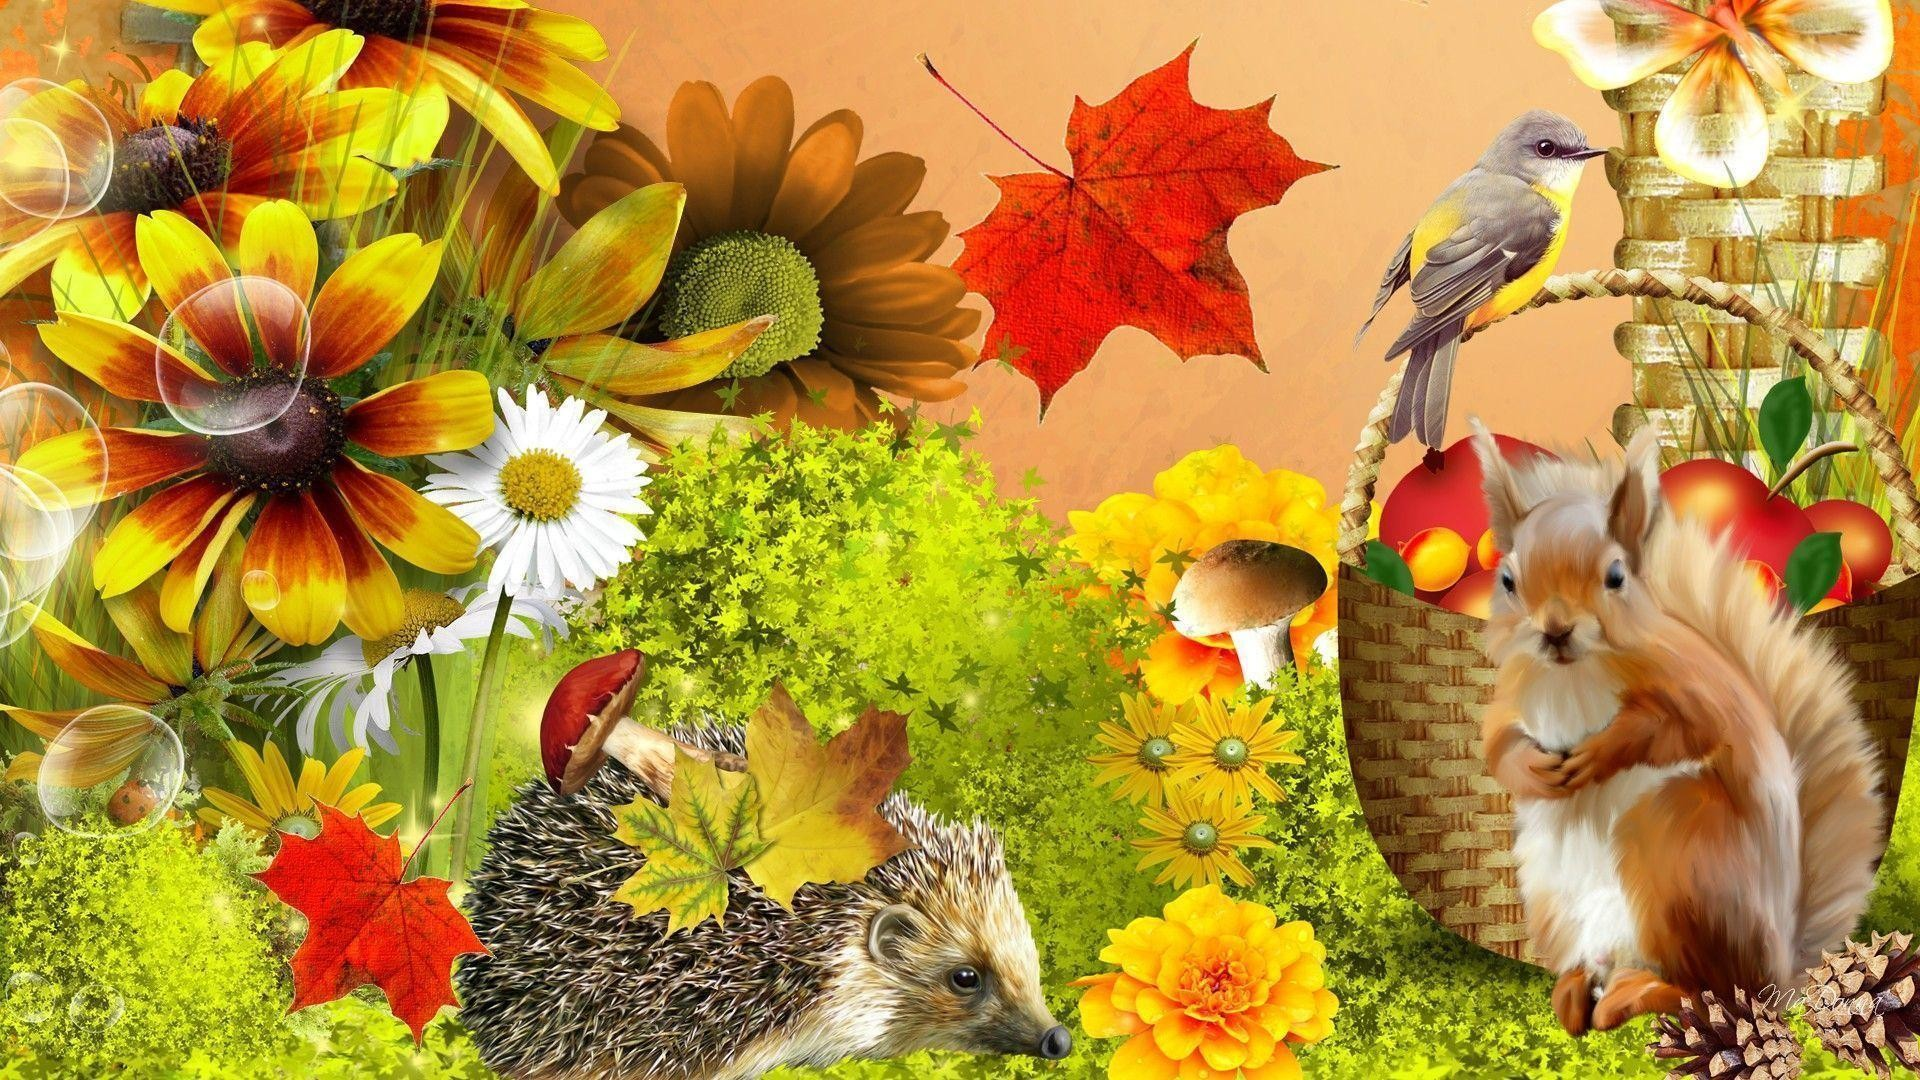 Wallpapers For > Fall Flowers And Pumpkins Wallpaper